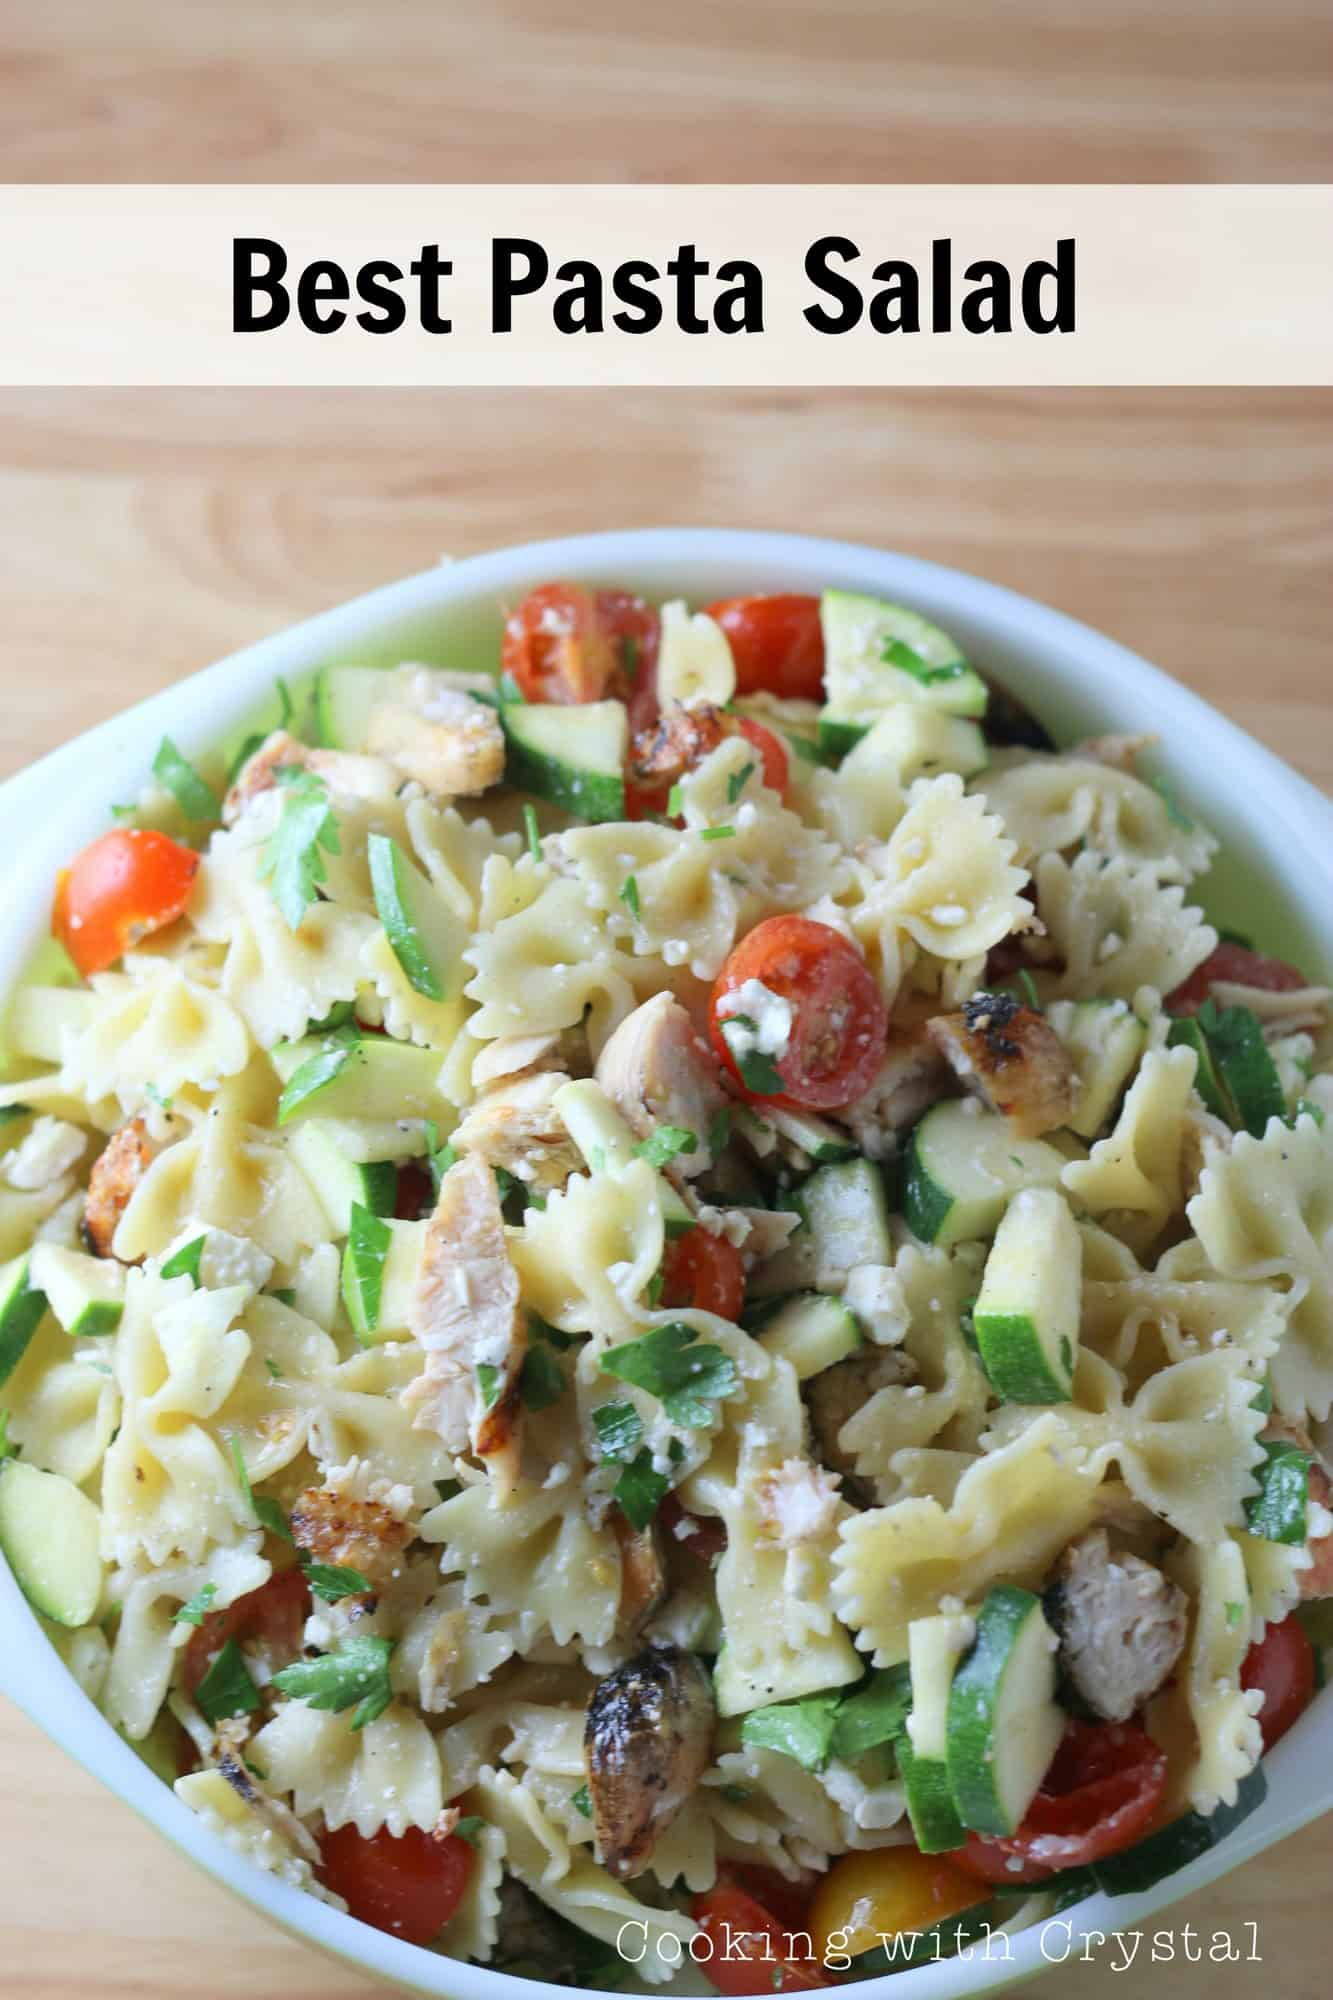 The Best Summer Pasta Salad - Over The Big Moon